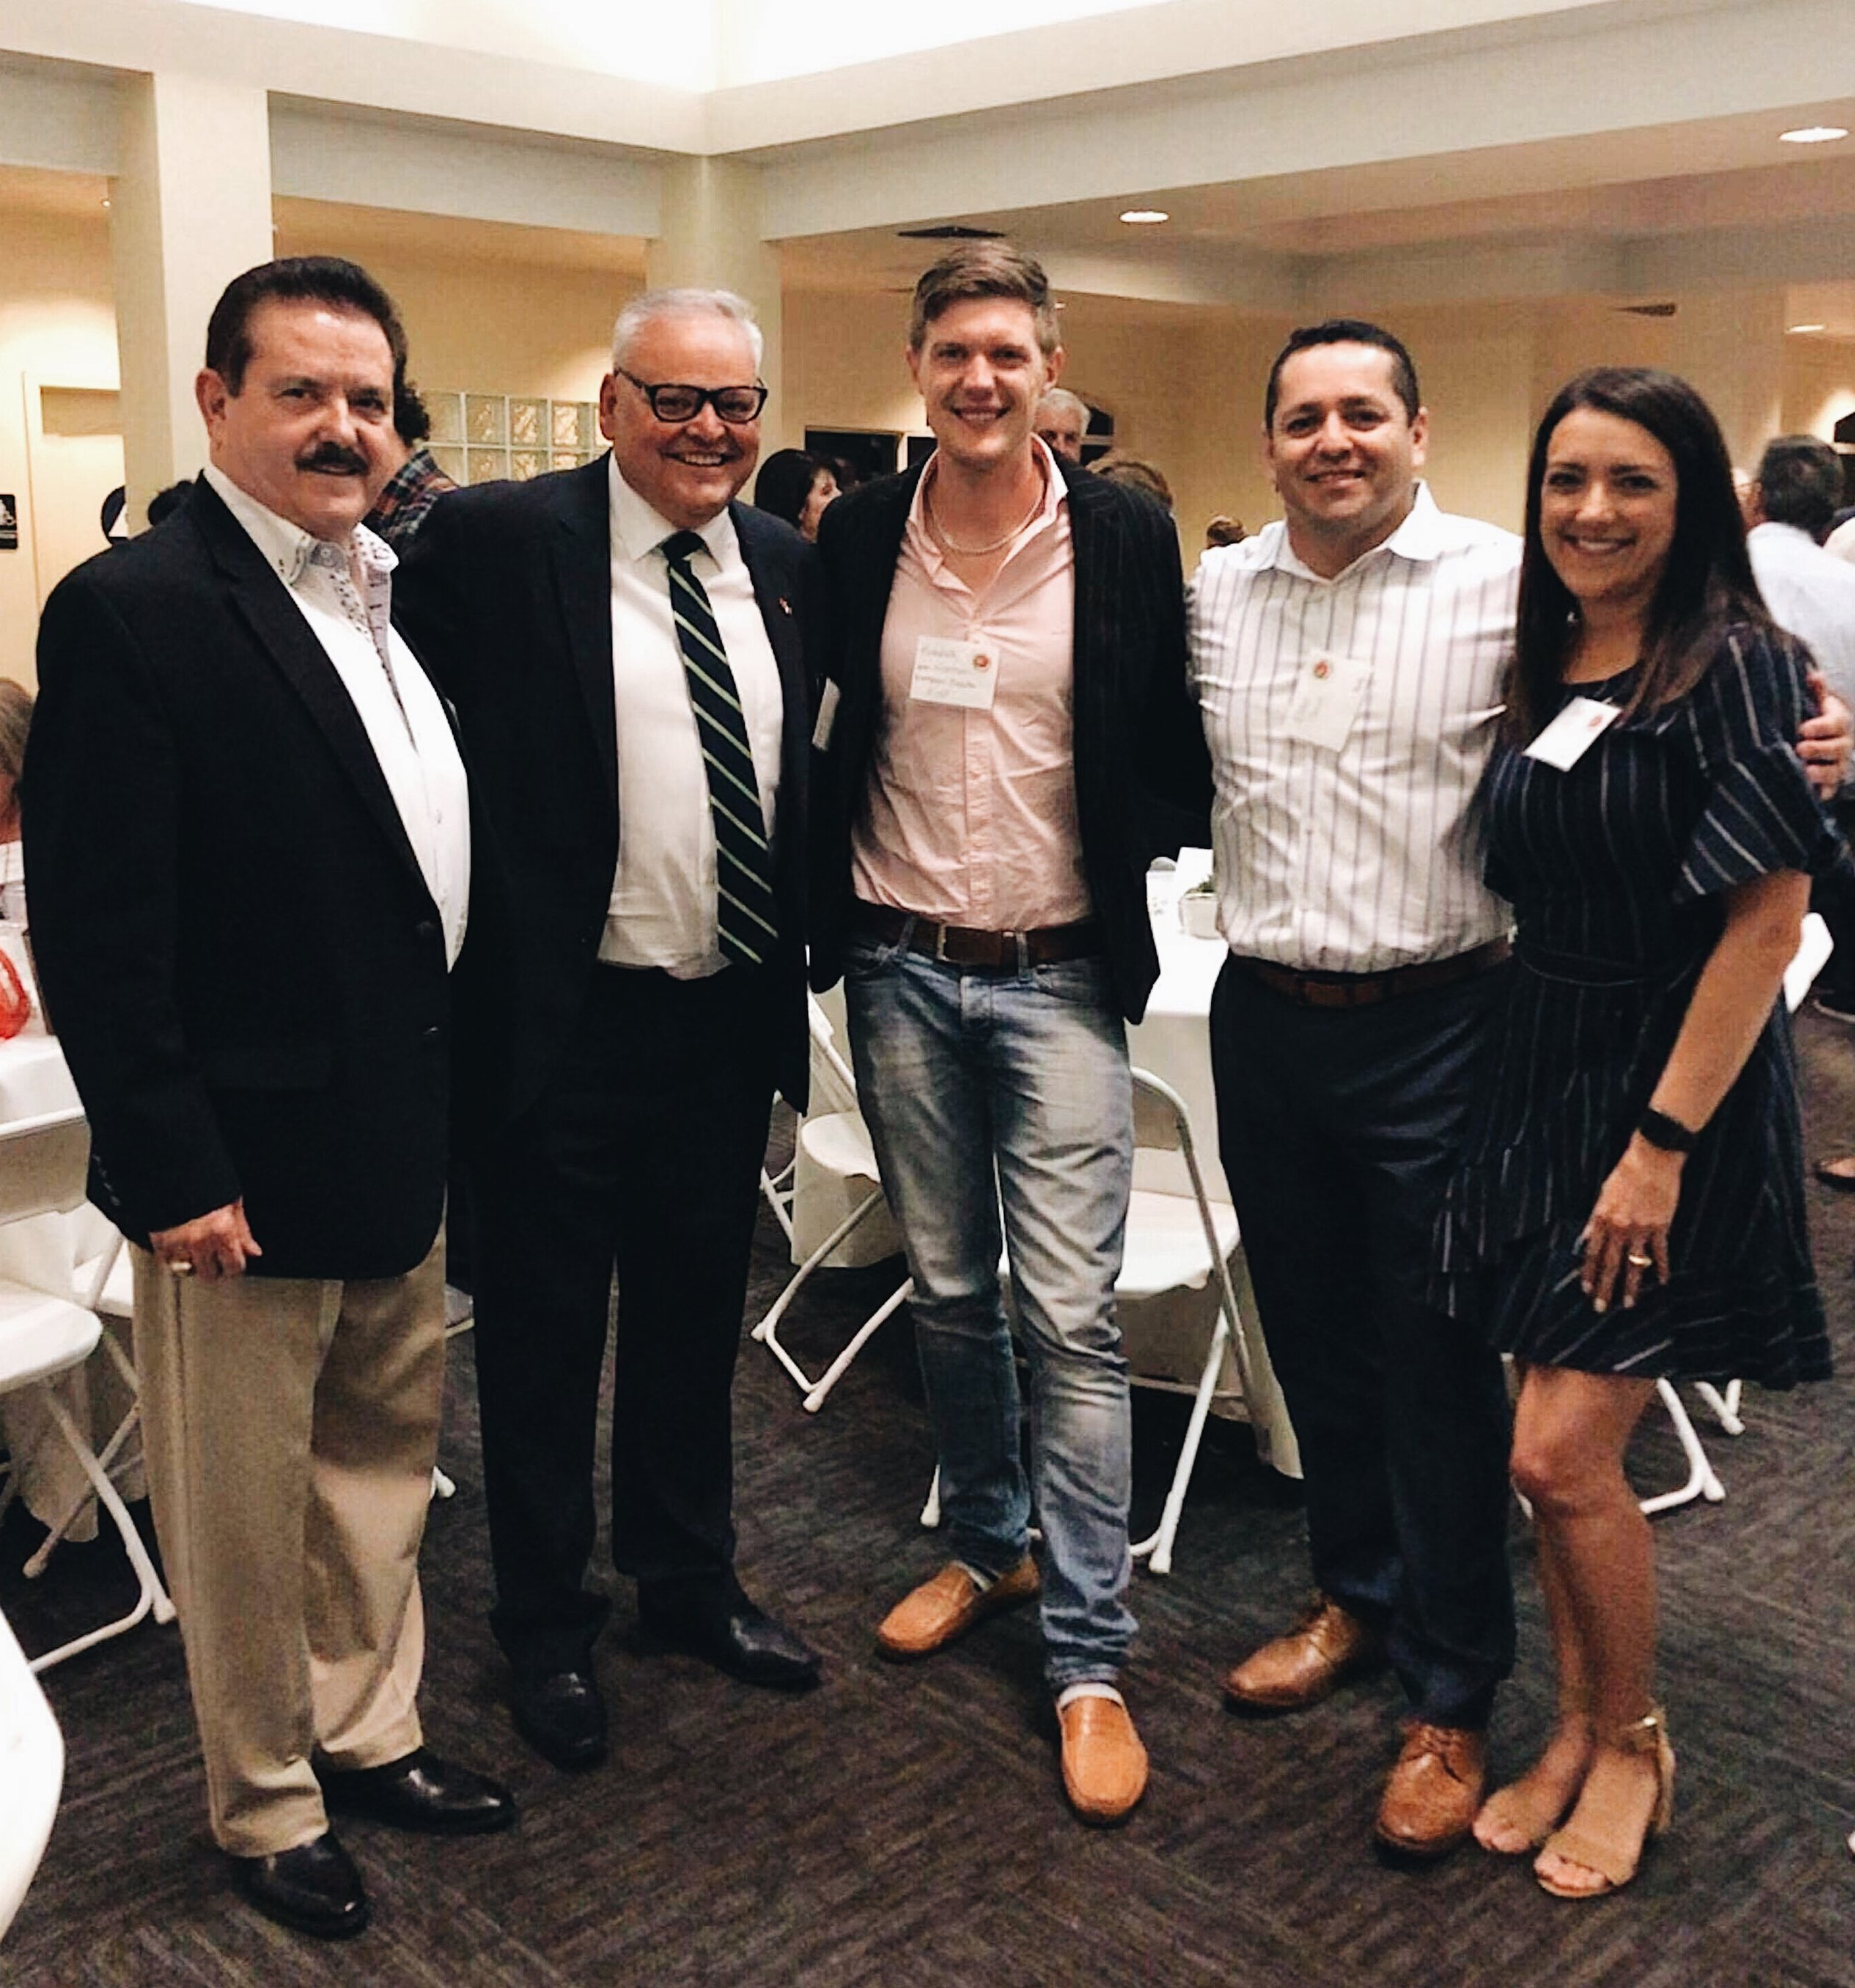 Sr.  Diniz Borges, the Honorary Consul of Portugal to California is pictured  here with Frank Serpa (far left), Hendrik Von Niessen (FoP Europe  Director), and Eddie & Susie Perez (FoP collaborators)  .